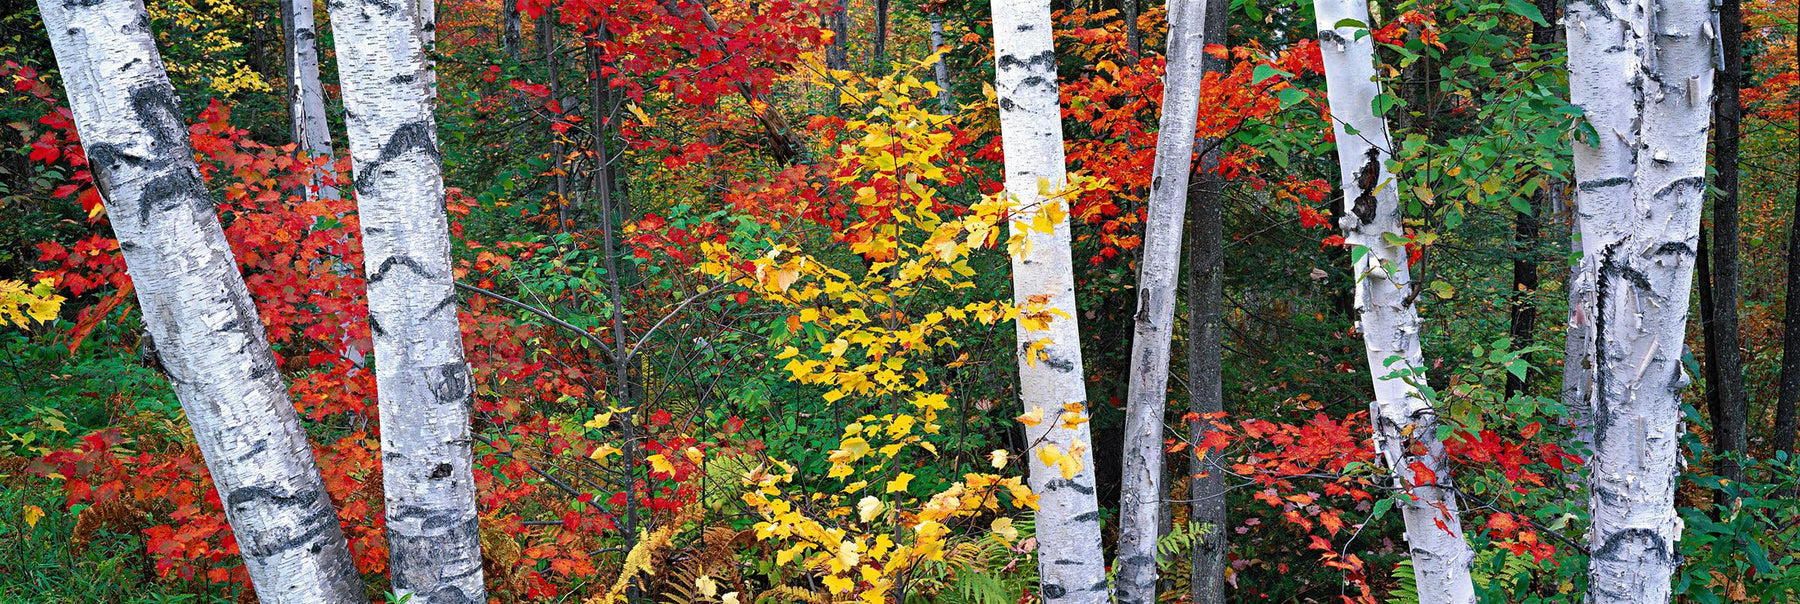 White birch trees surrounded by a forest of Autumn colors in New Hampshire